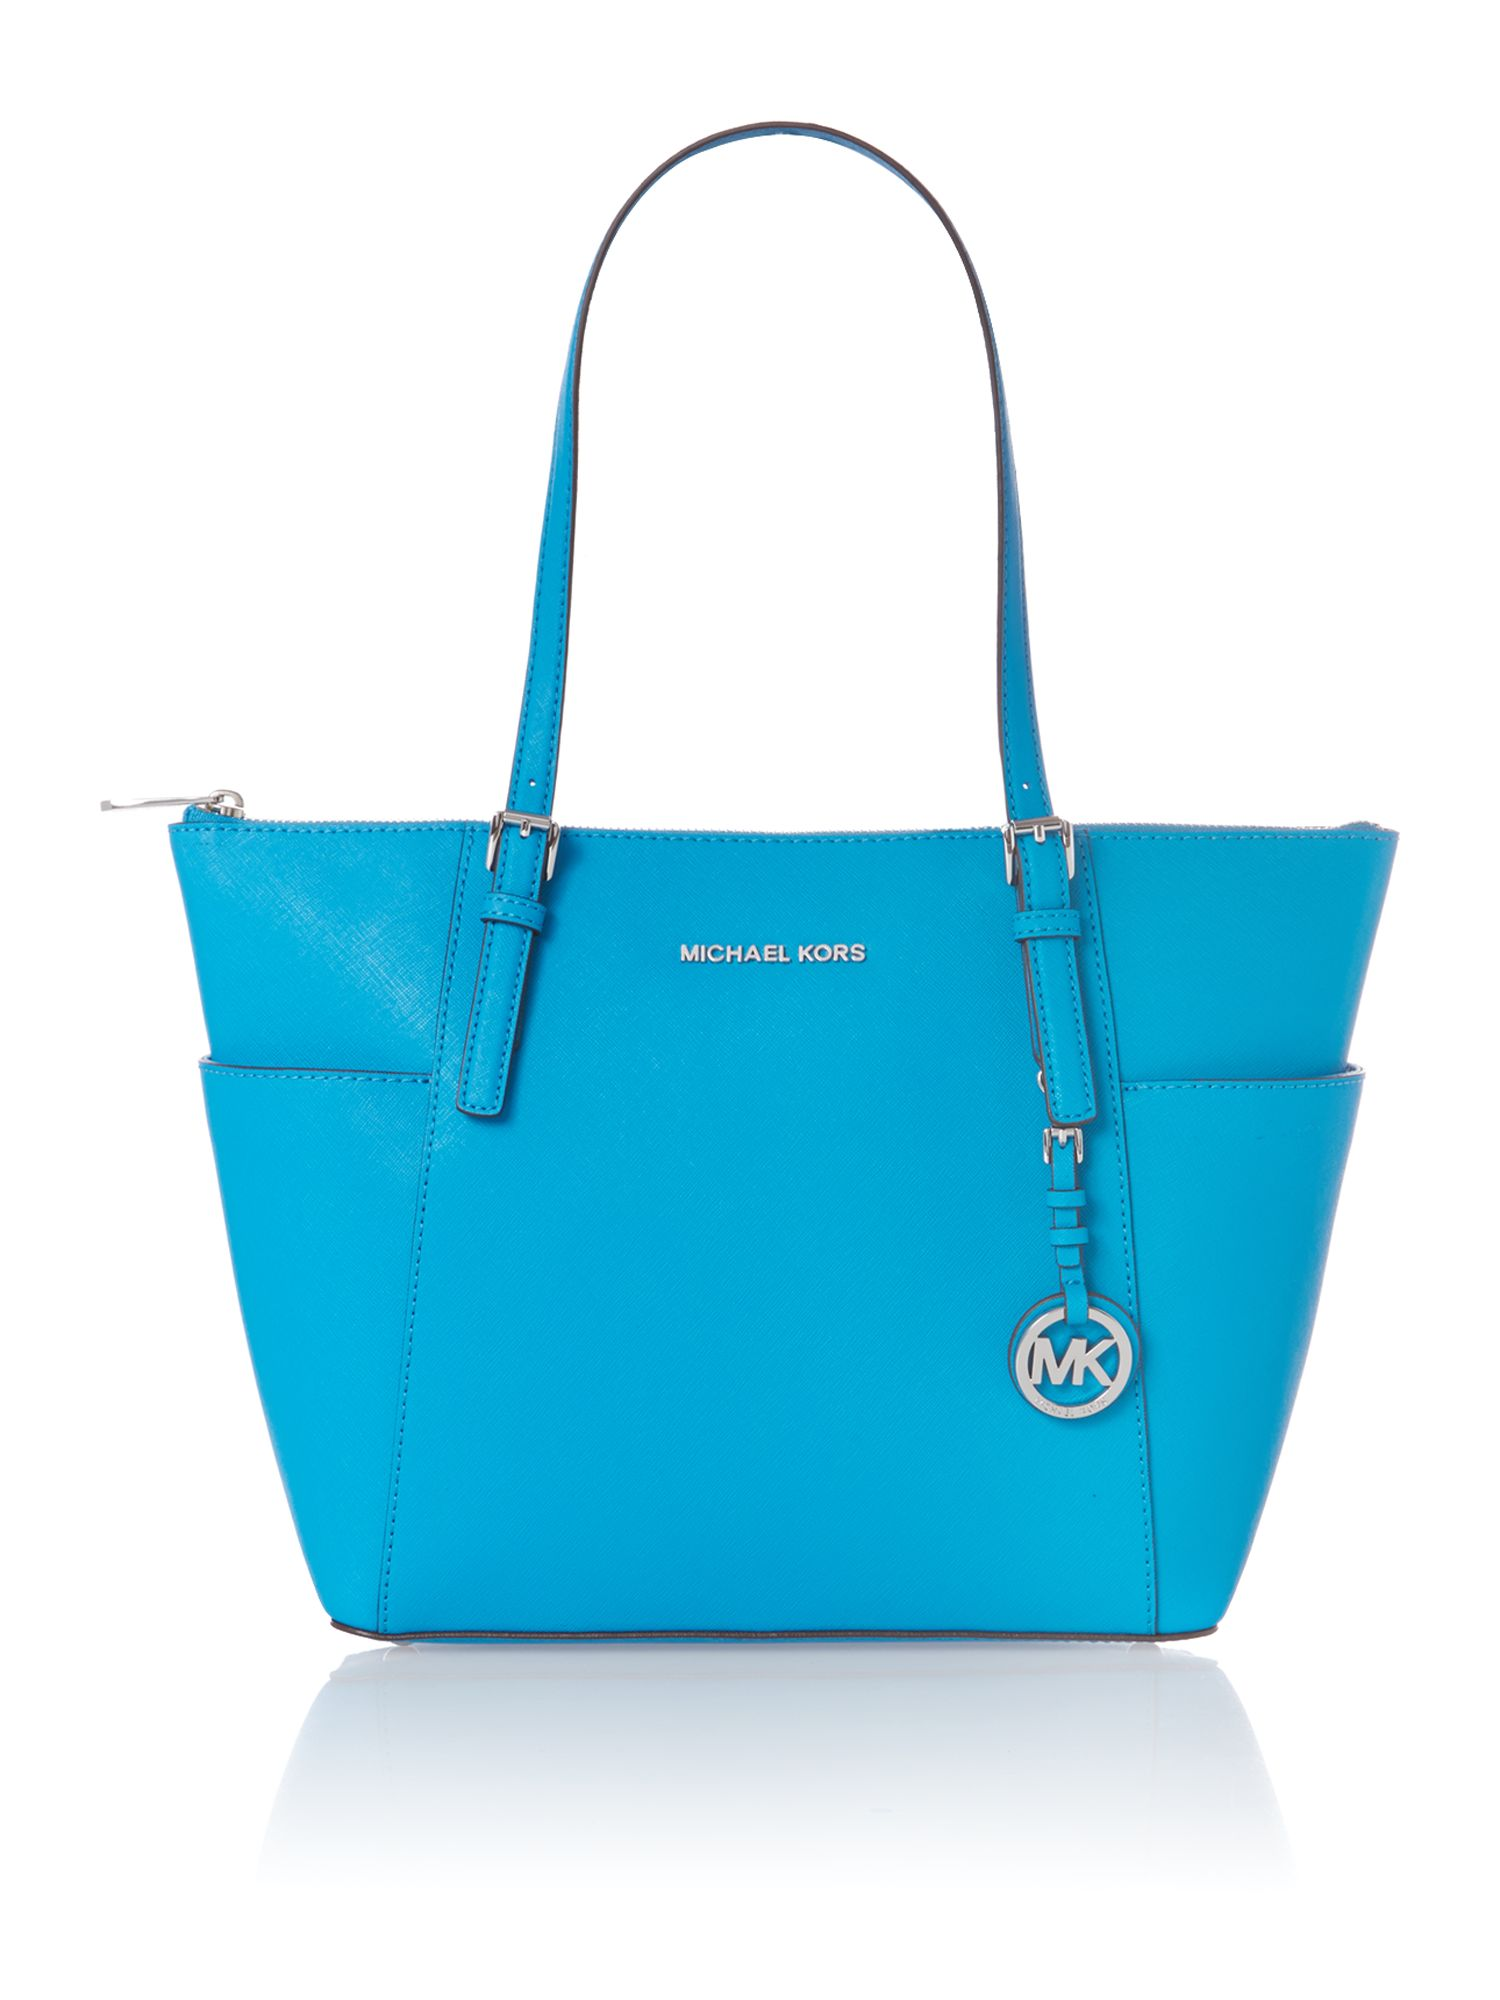 Jet set travel small blue zip top tote bag